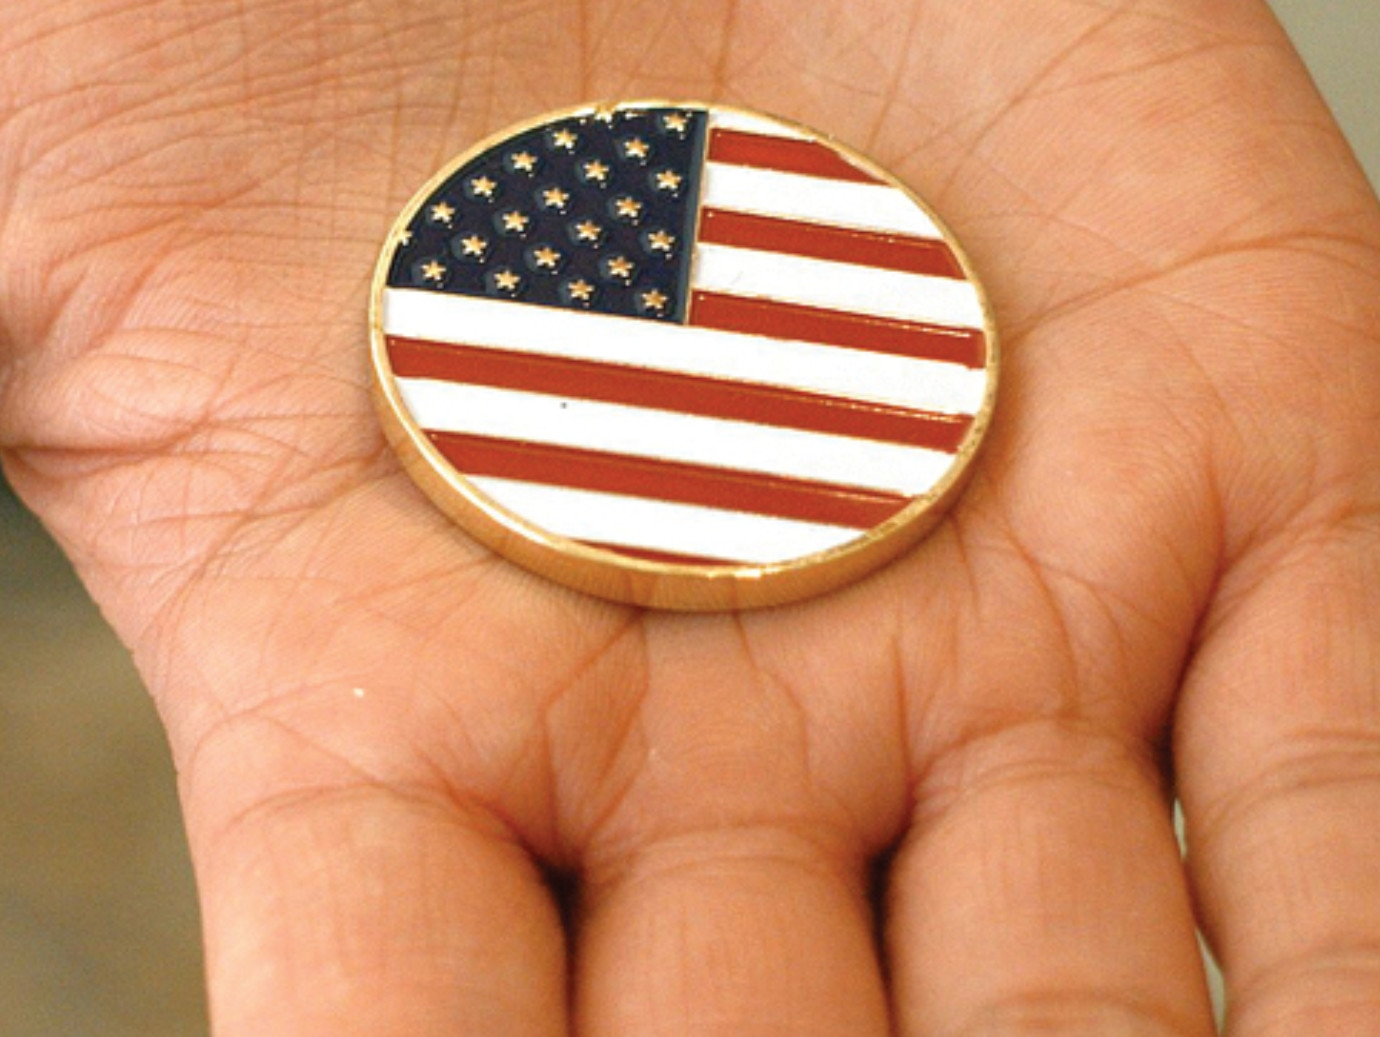 A hand holding United States flag badge